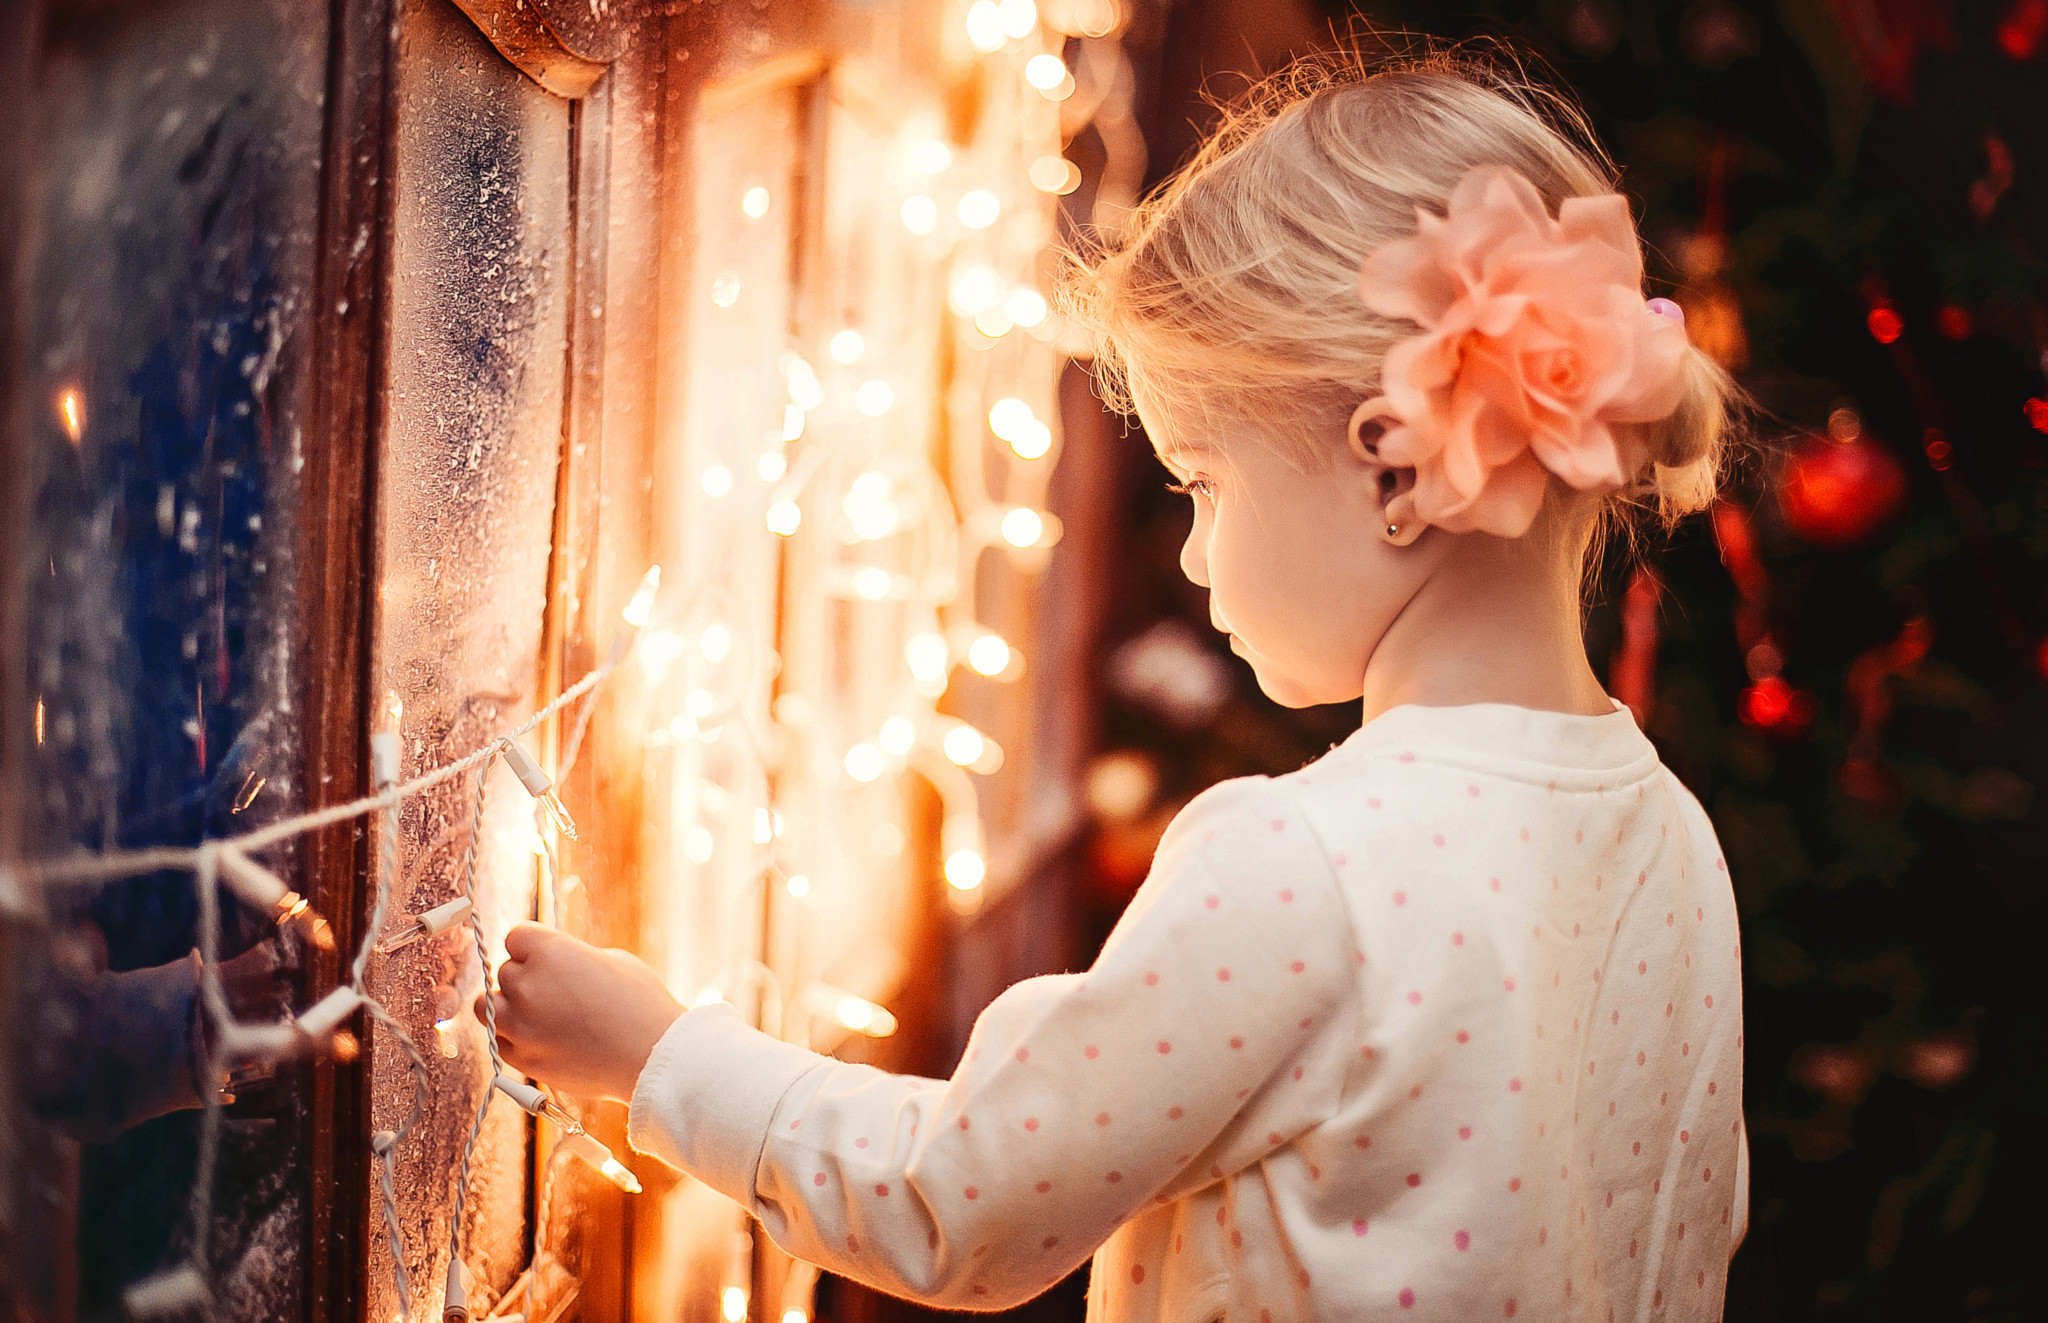 Res: 2048x1323, girl, garland, child, frost, winter, lights, new year, christmas